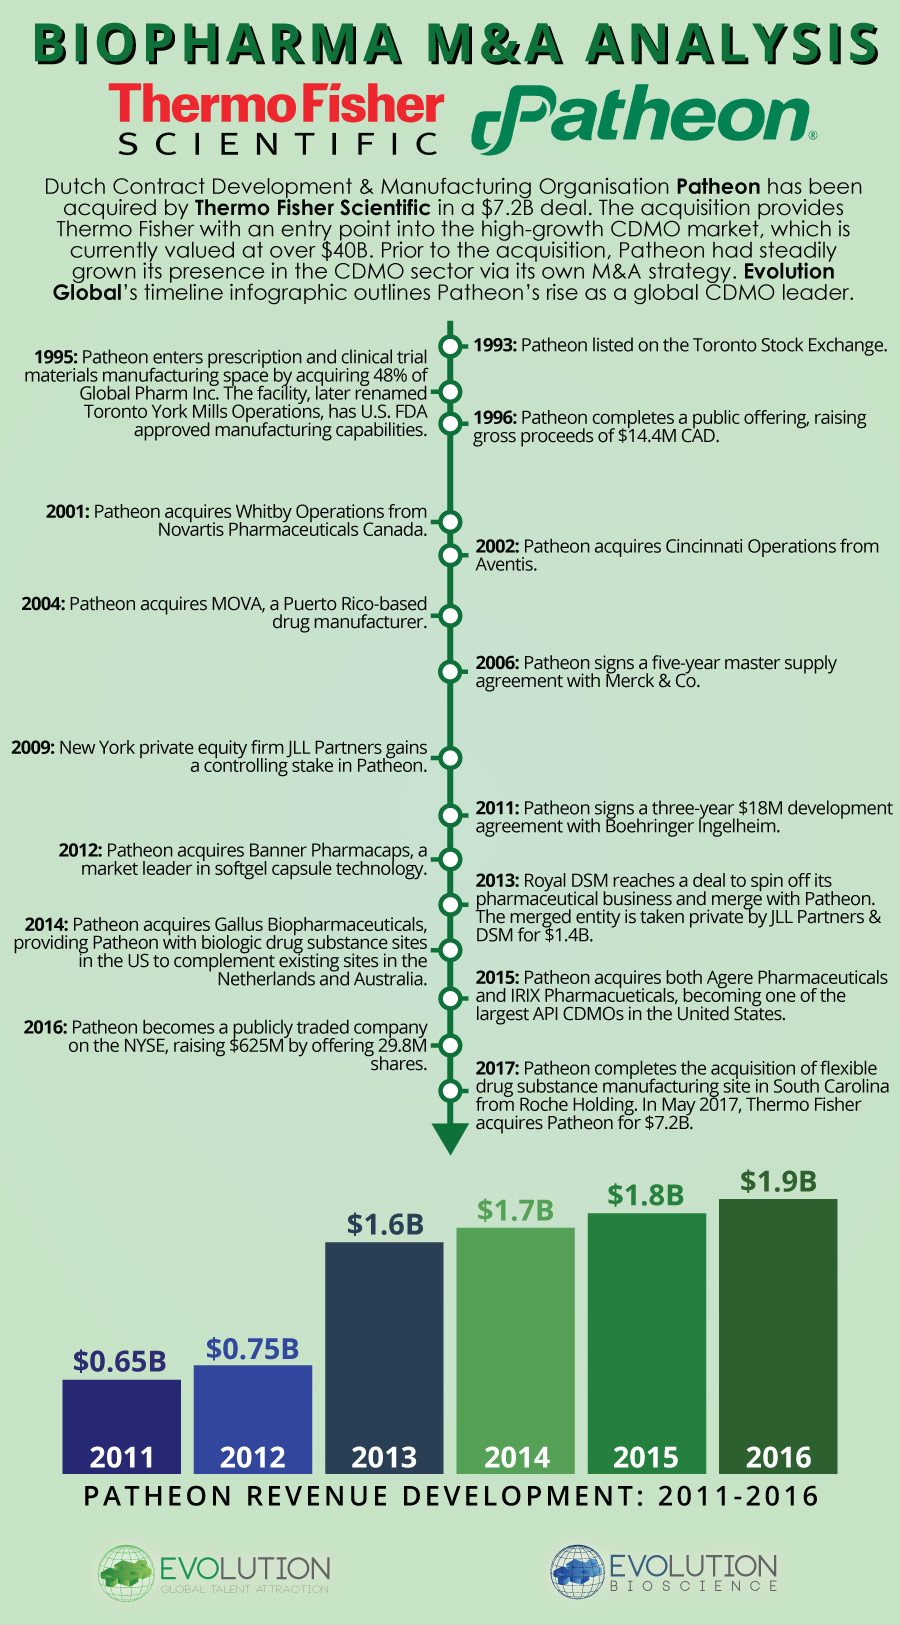 Thermo Fisher & Patheon - A Timeline Infographic by Evolution Global